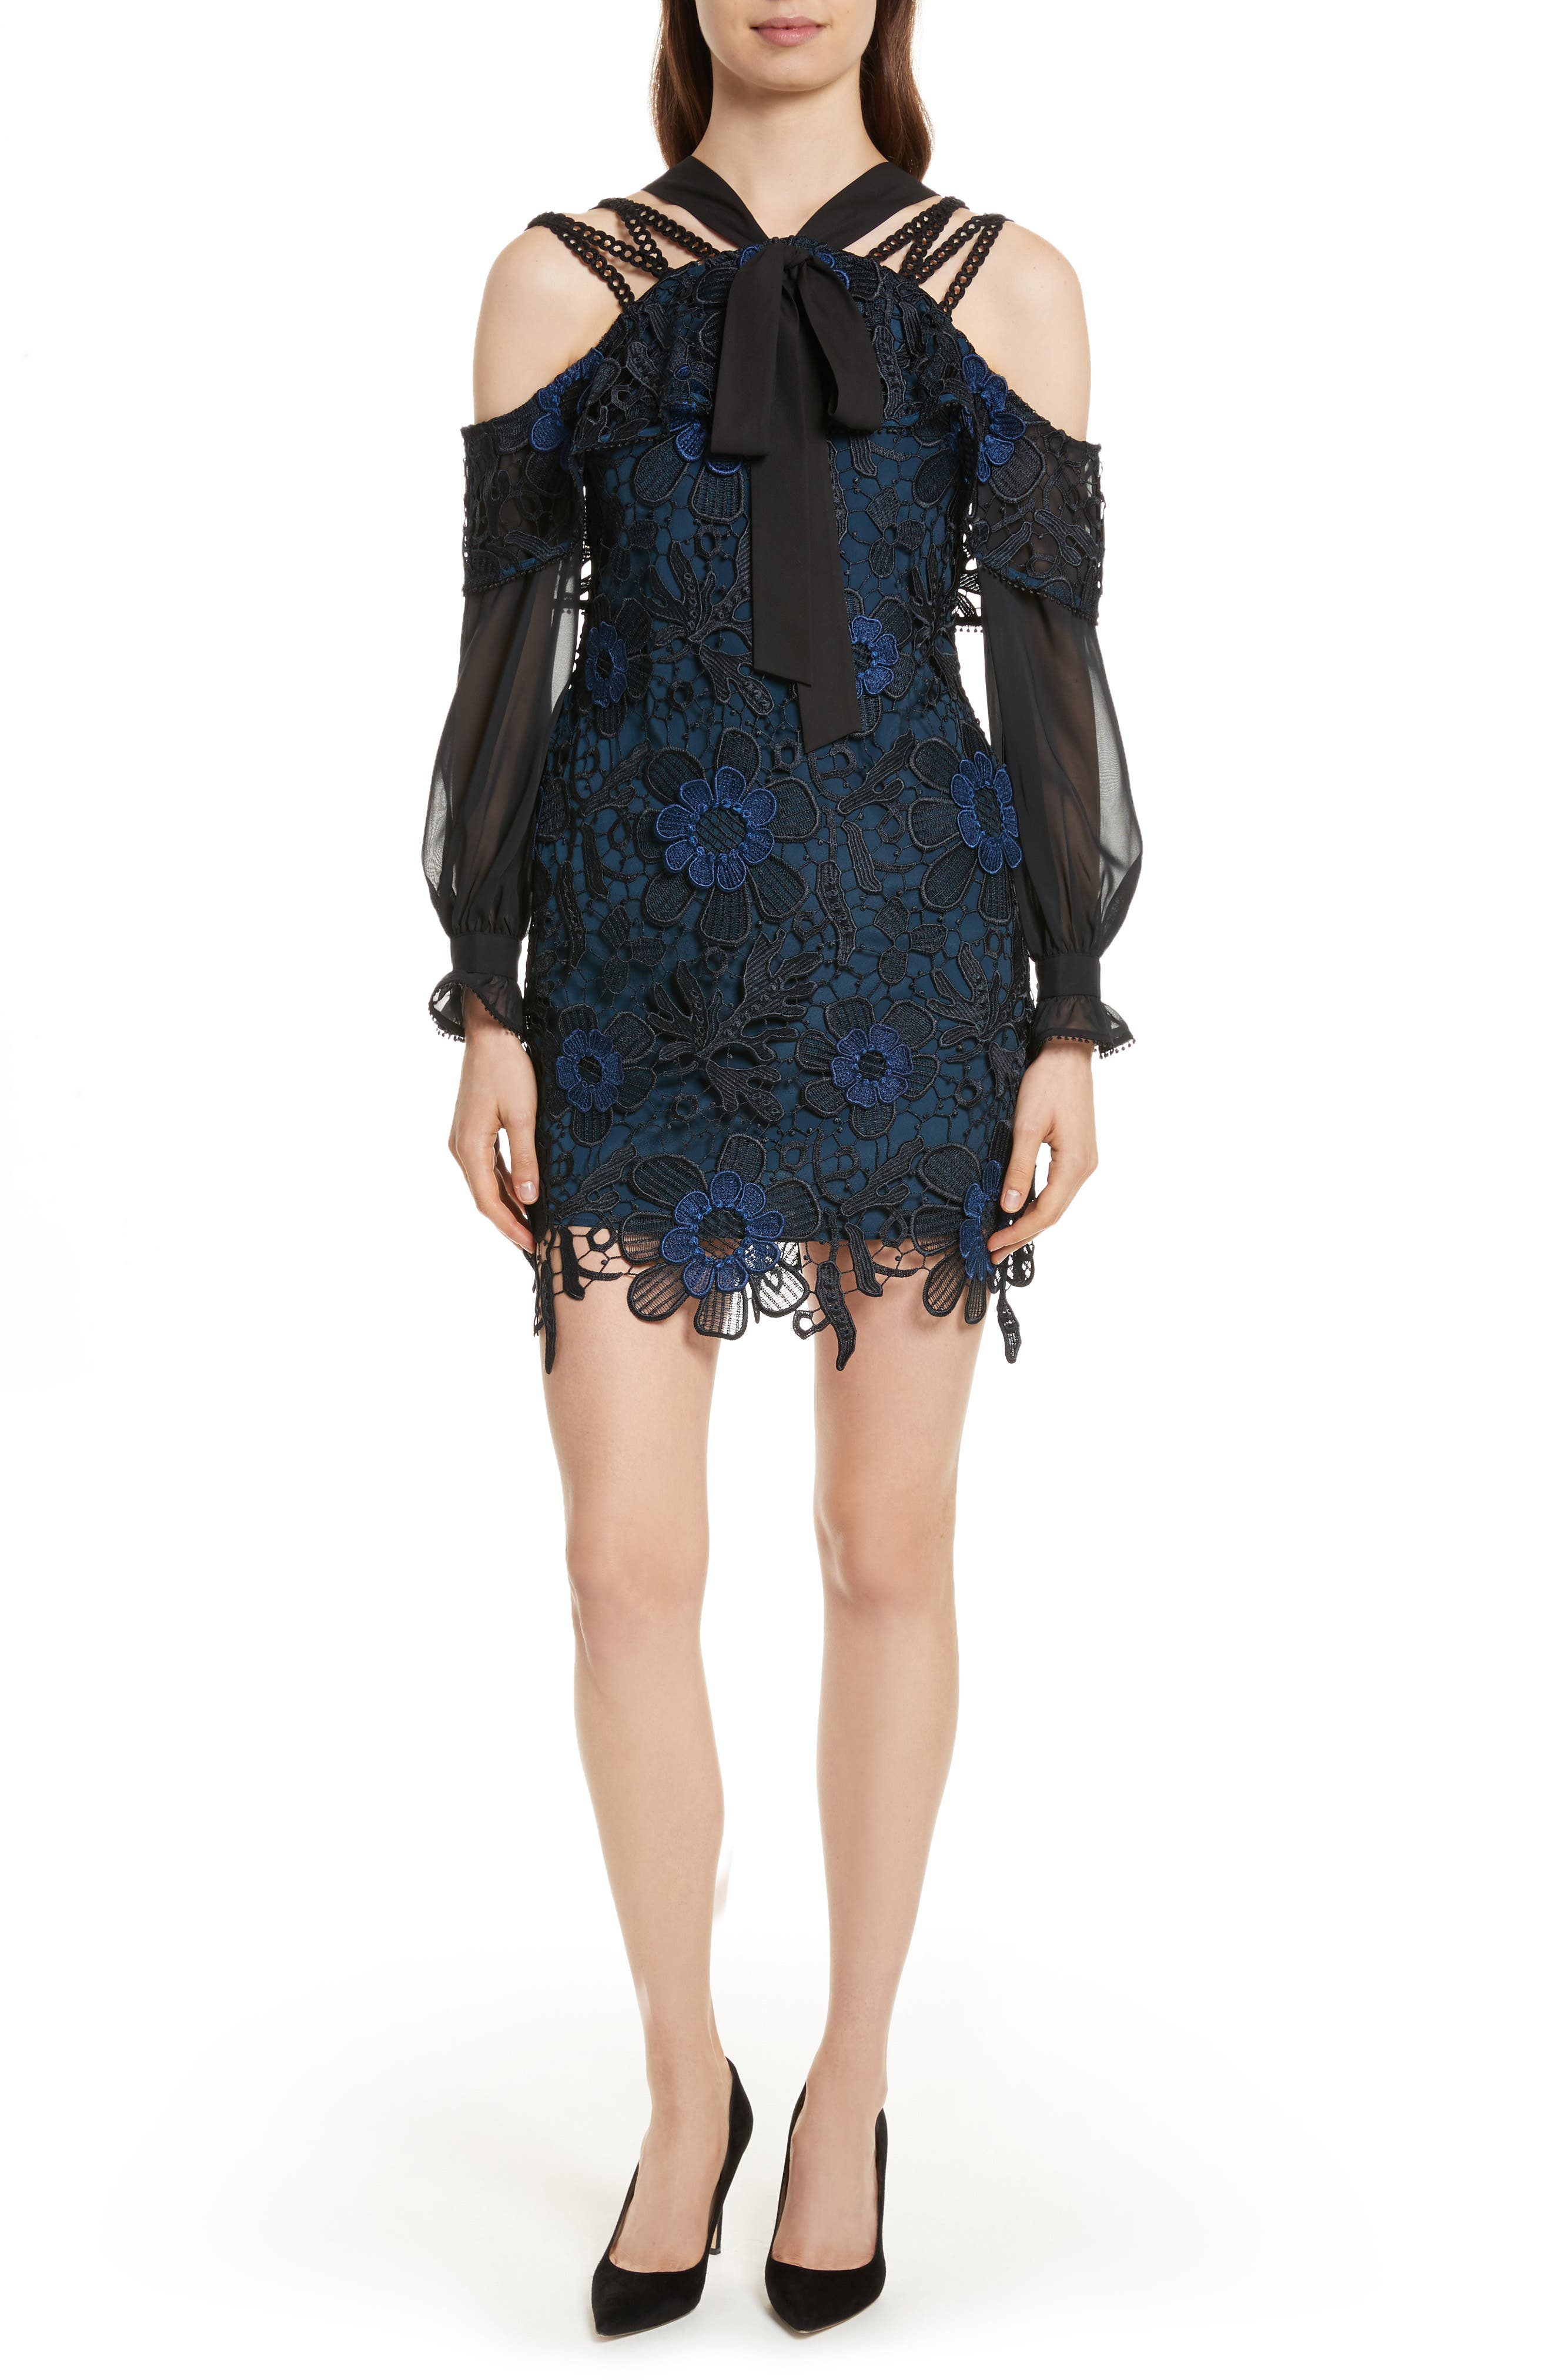 Self-Portrait 3D Floral Lace Minidress